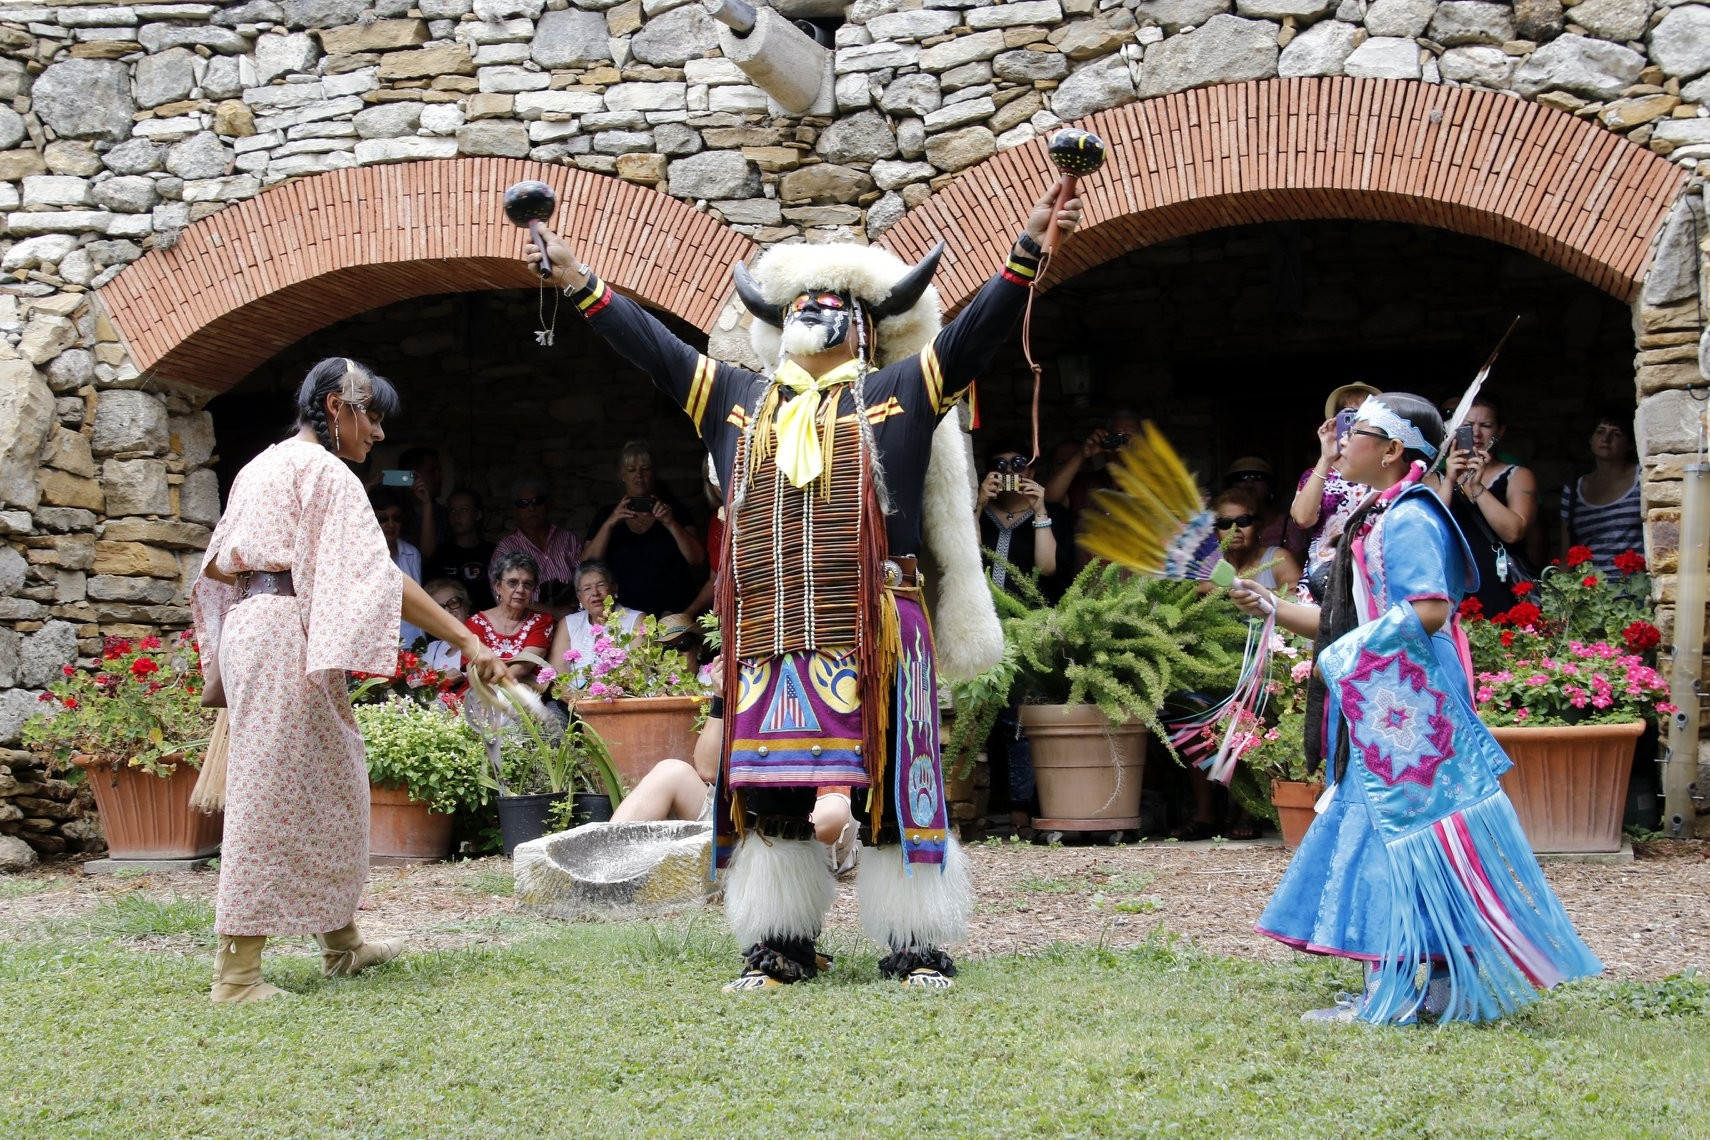 Cactus Blossom Mission Heritage Dinner Celebrates Native American Culture, Food